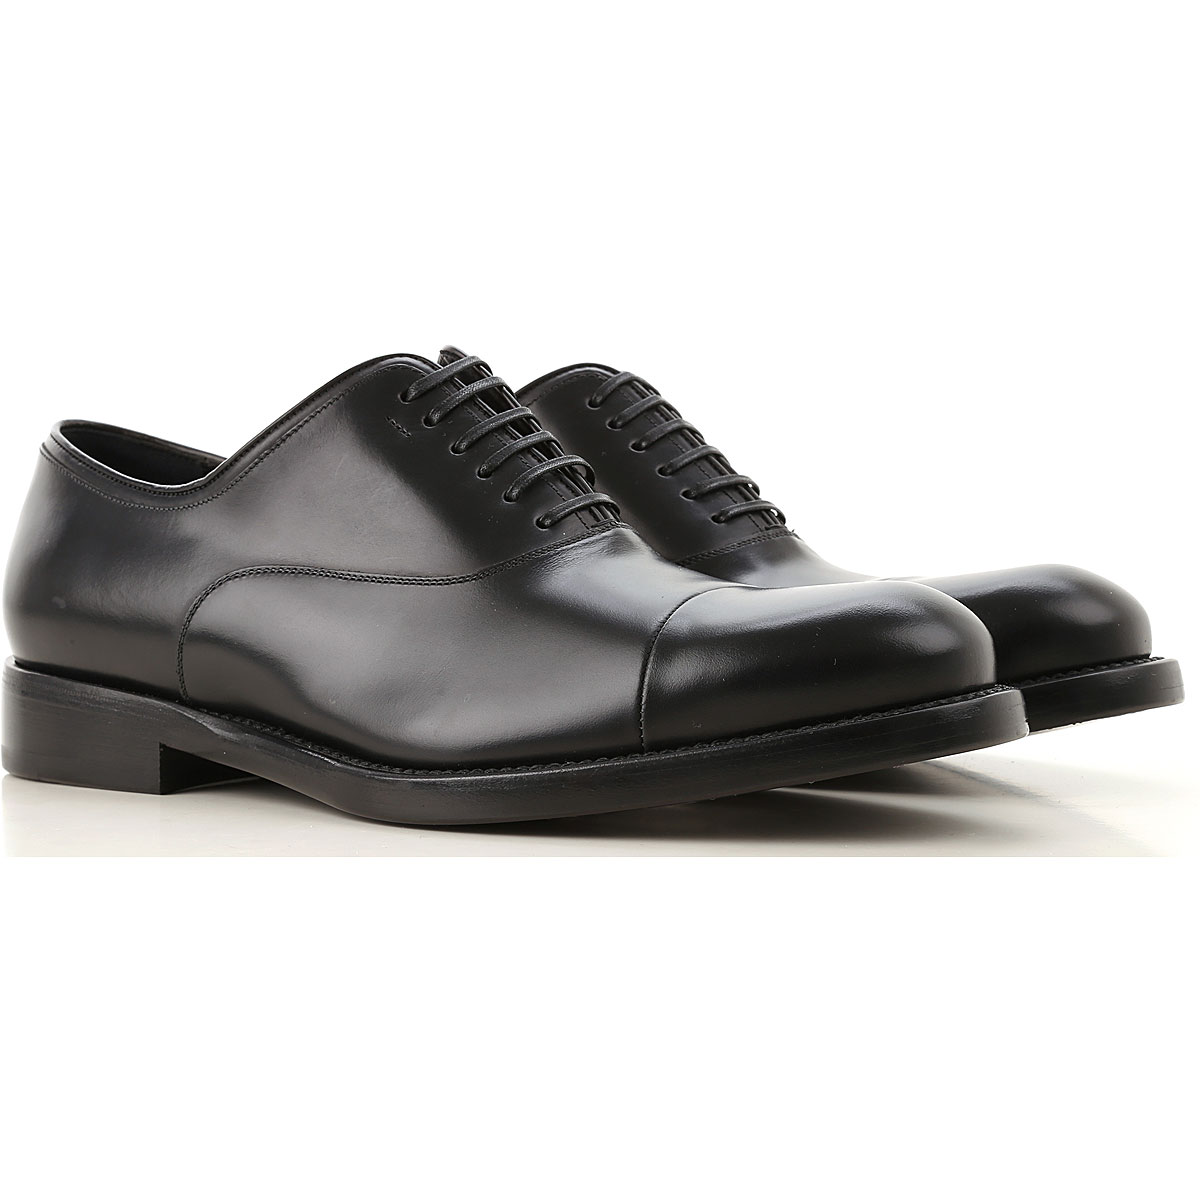 Salvatore Ferragamo Lace Up Shoes for Men Oxfords, Derbies and Brogues On Sale in Outlet, Black, Calf Leather, 2019, 8 8.5